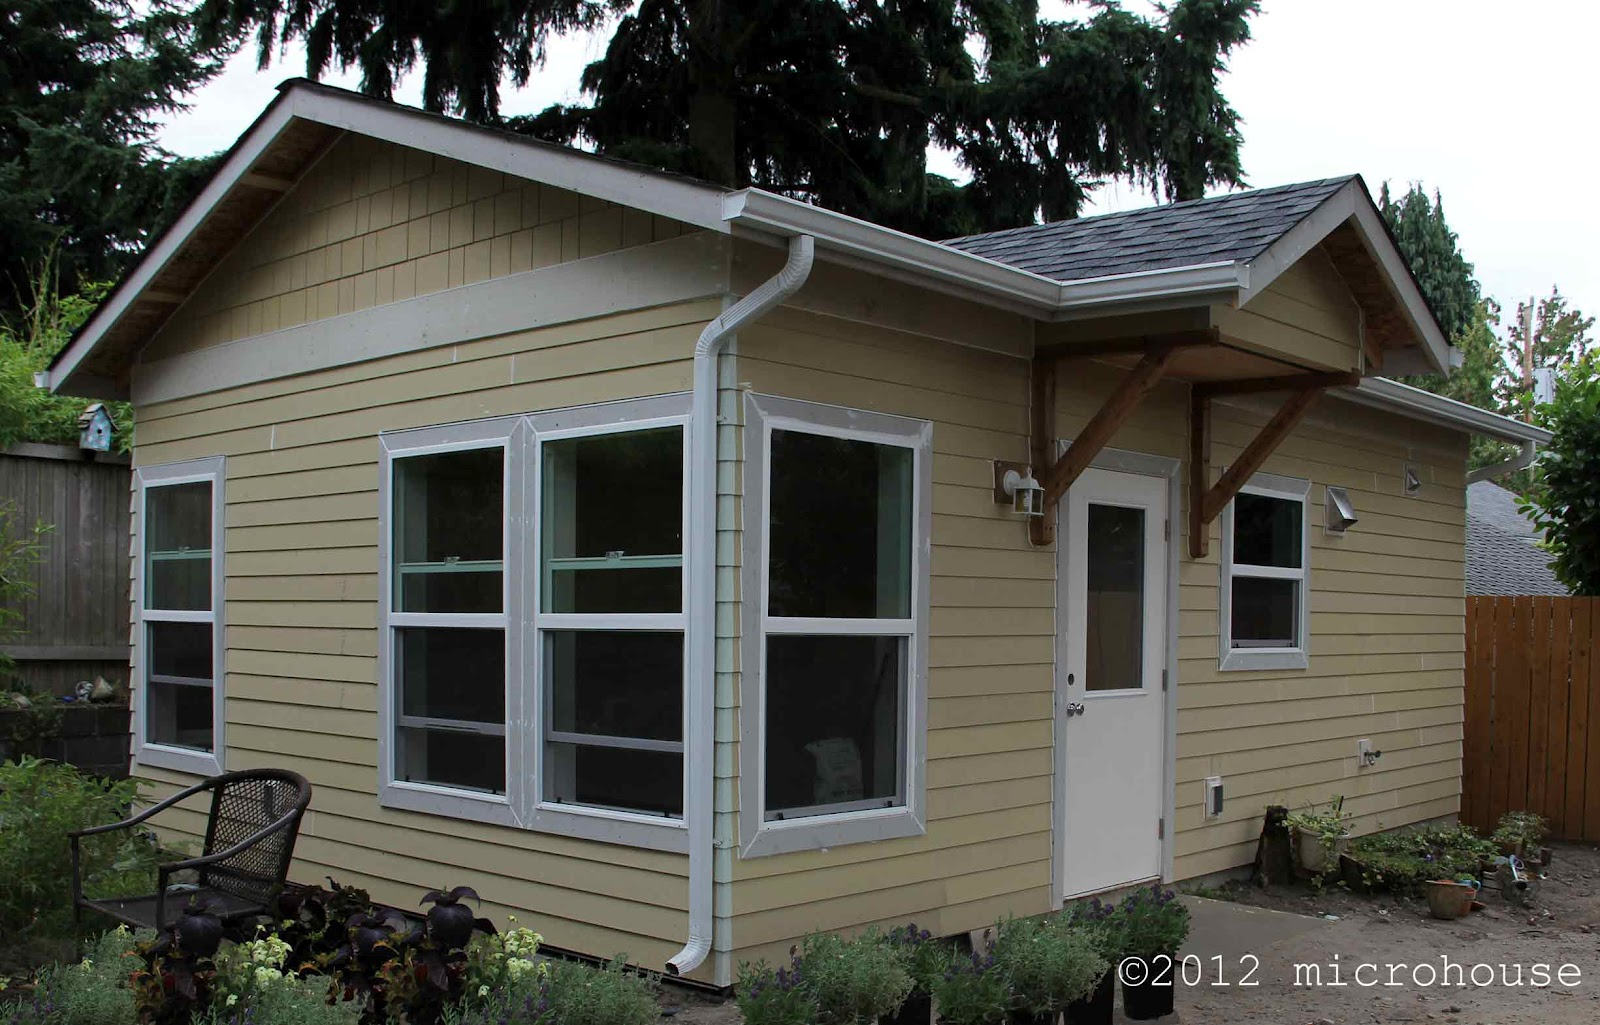 Backyard cottage blog backyard cottage for a great Tiny house in backyard